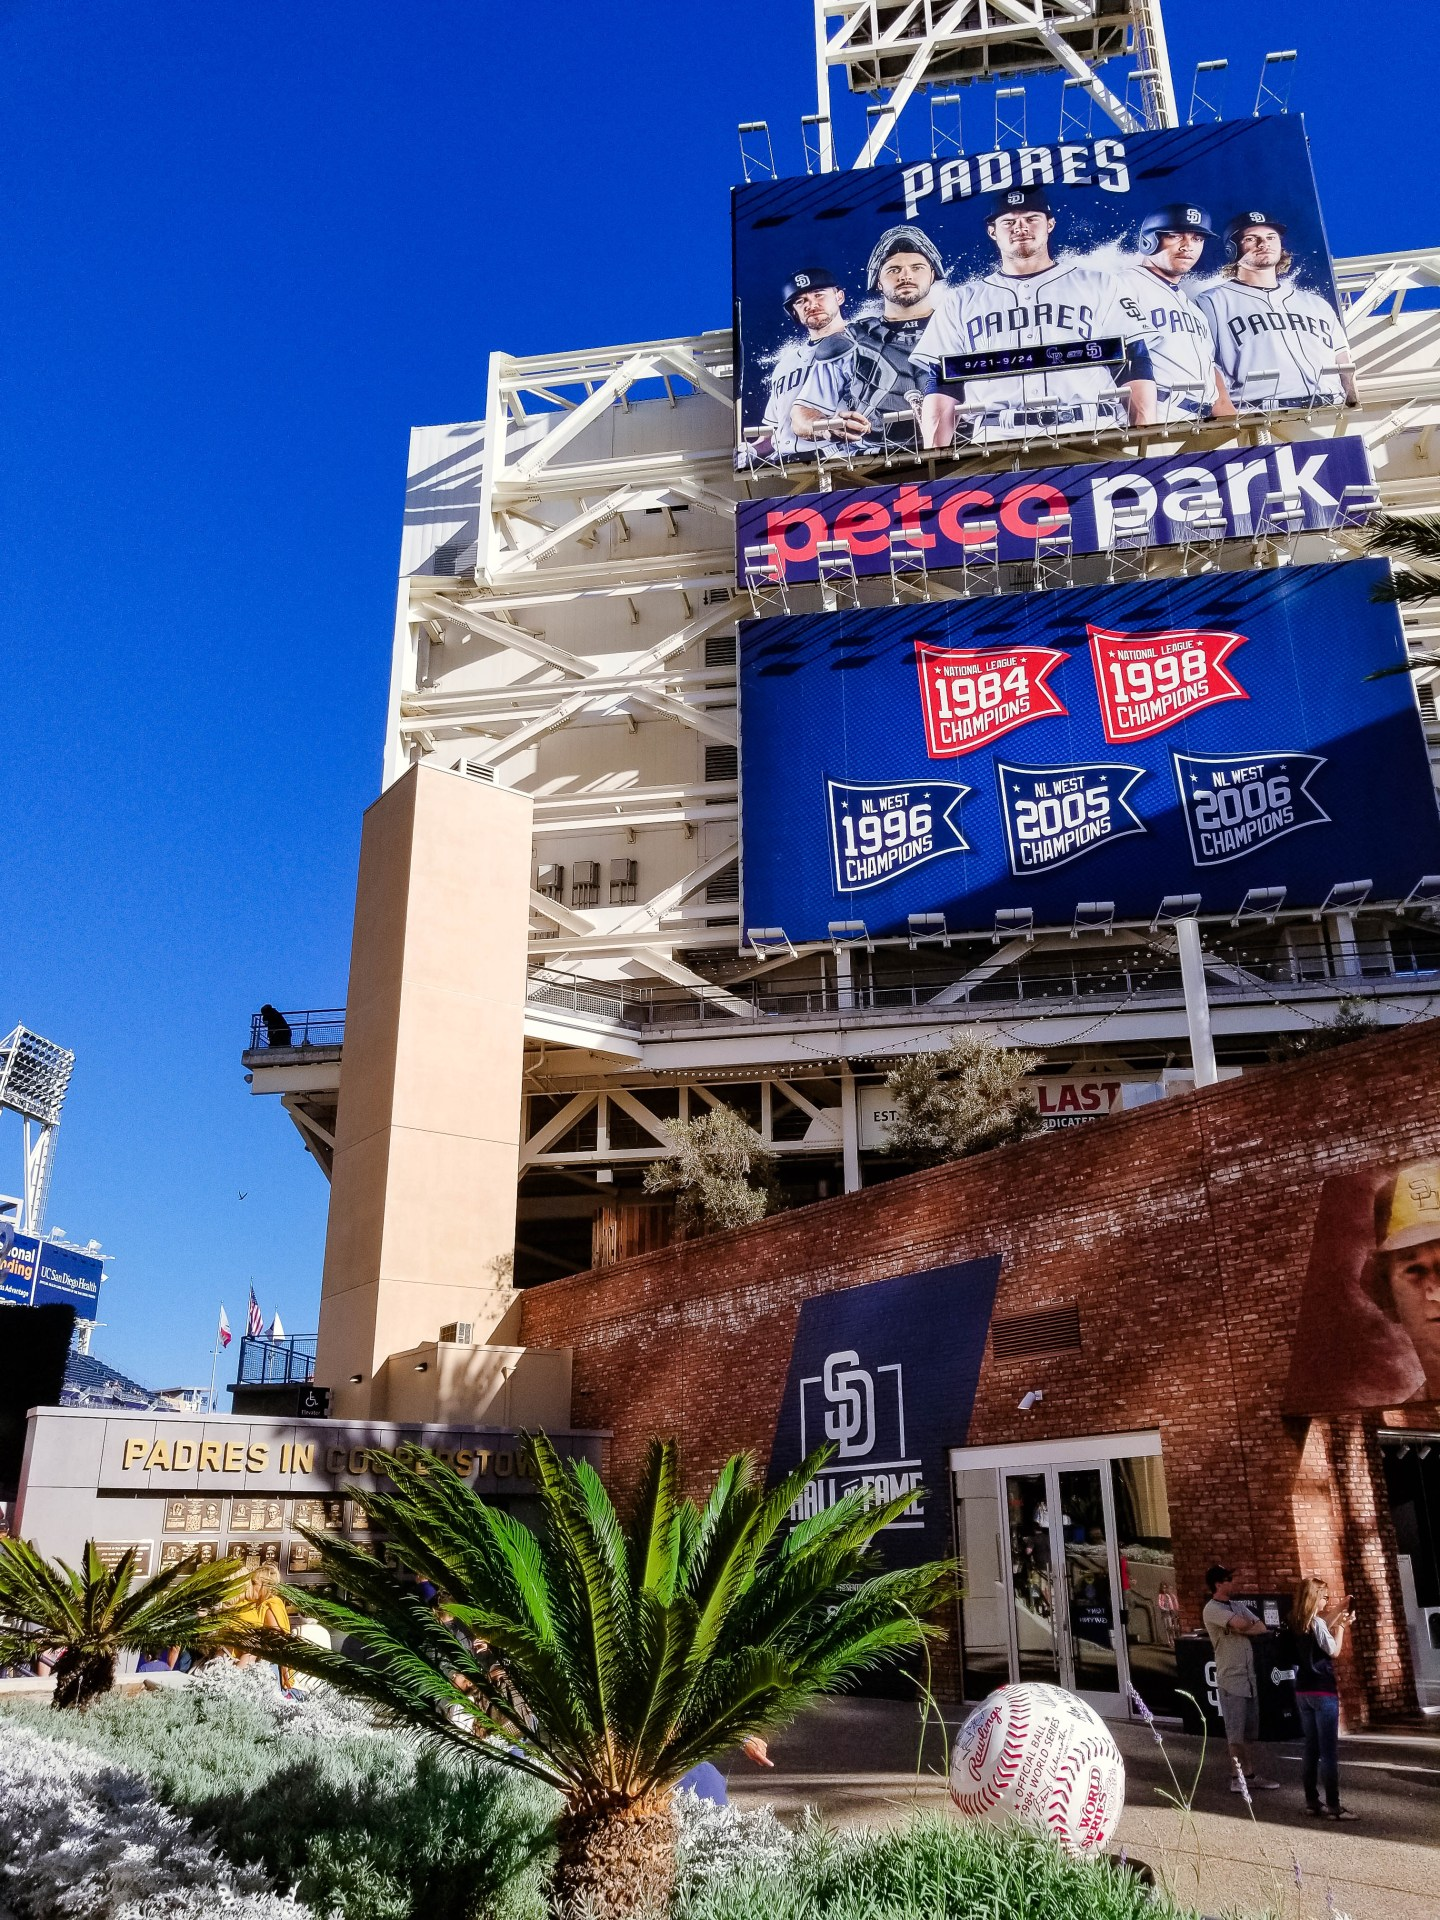 Going to a Baseball Game with Kids at Petco Park